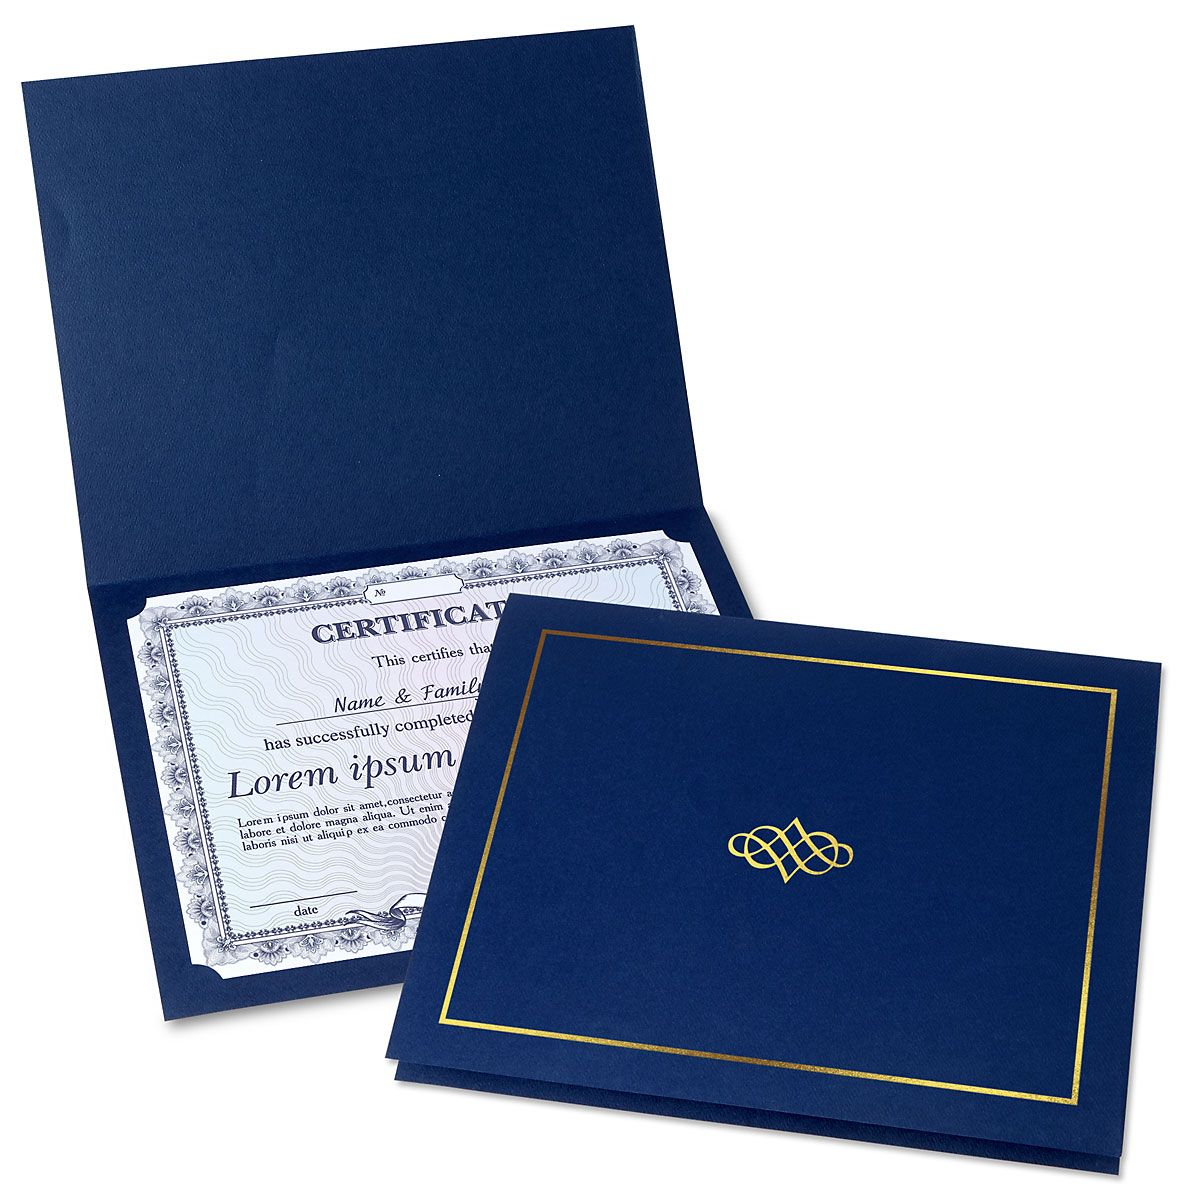 Ornate Blue Certificate Folder with Gold Border/Crest